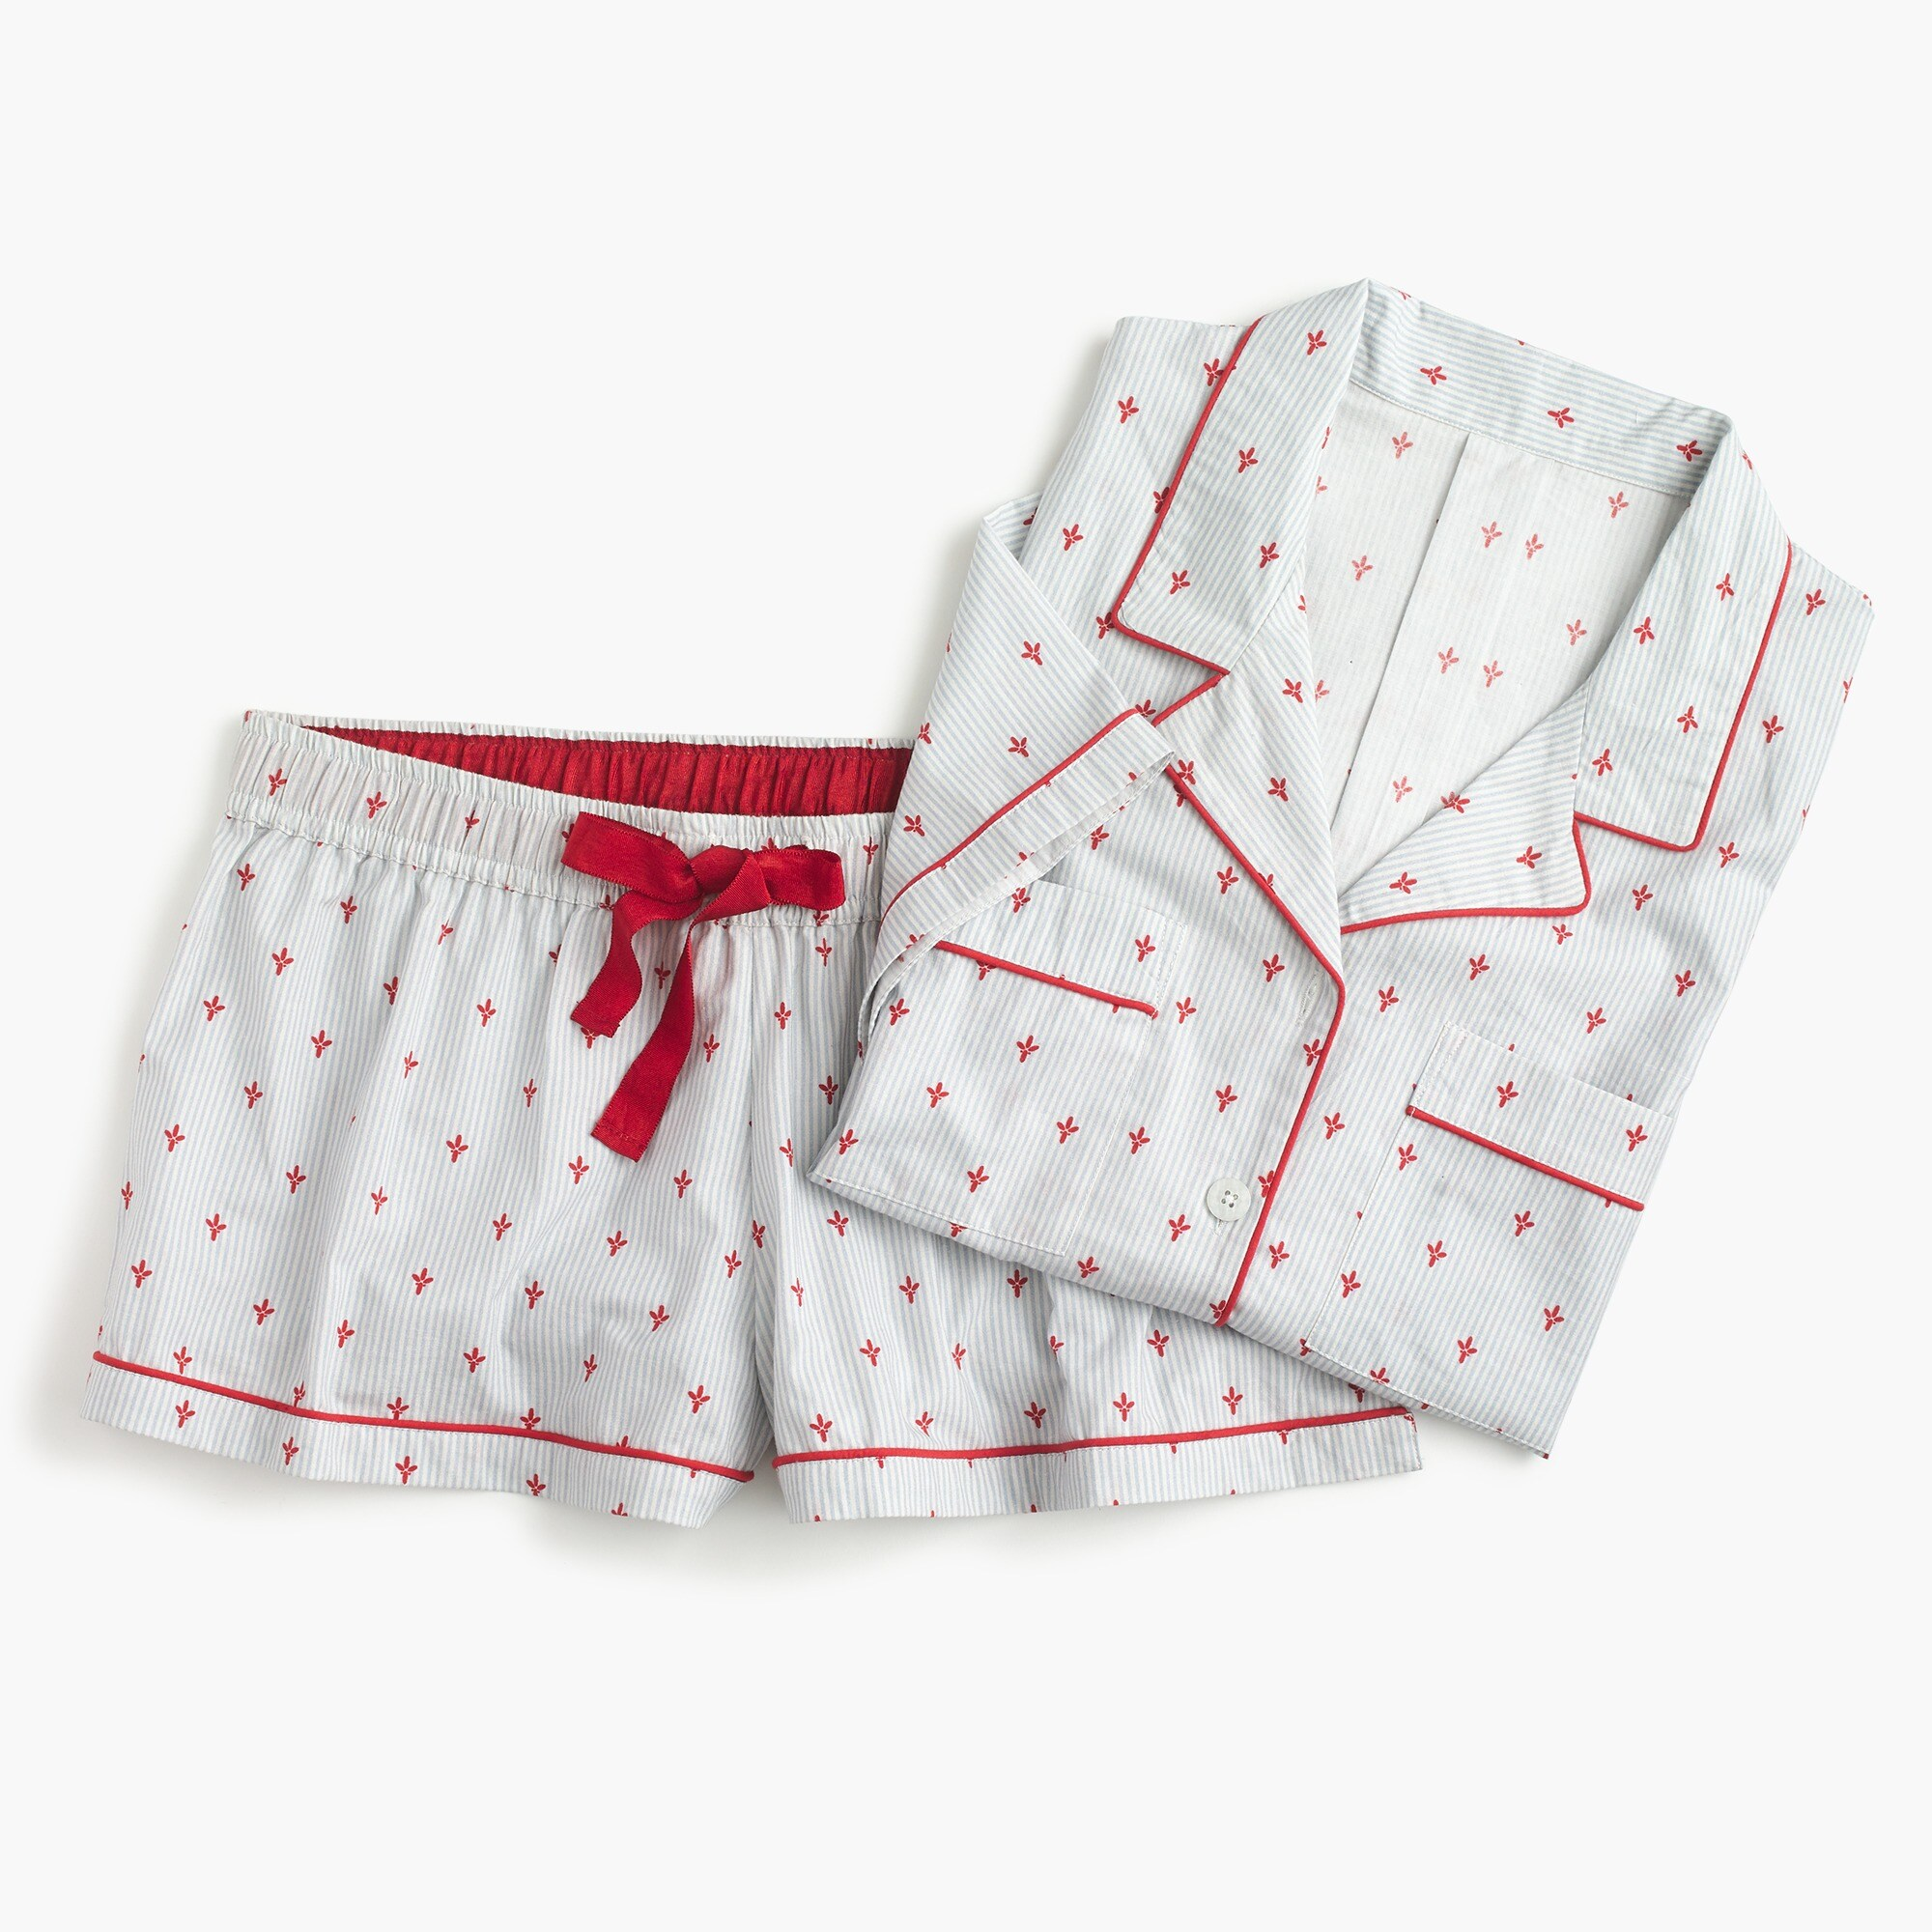 Image 1 for Pajama set in fleur-de-lis